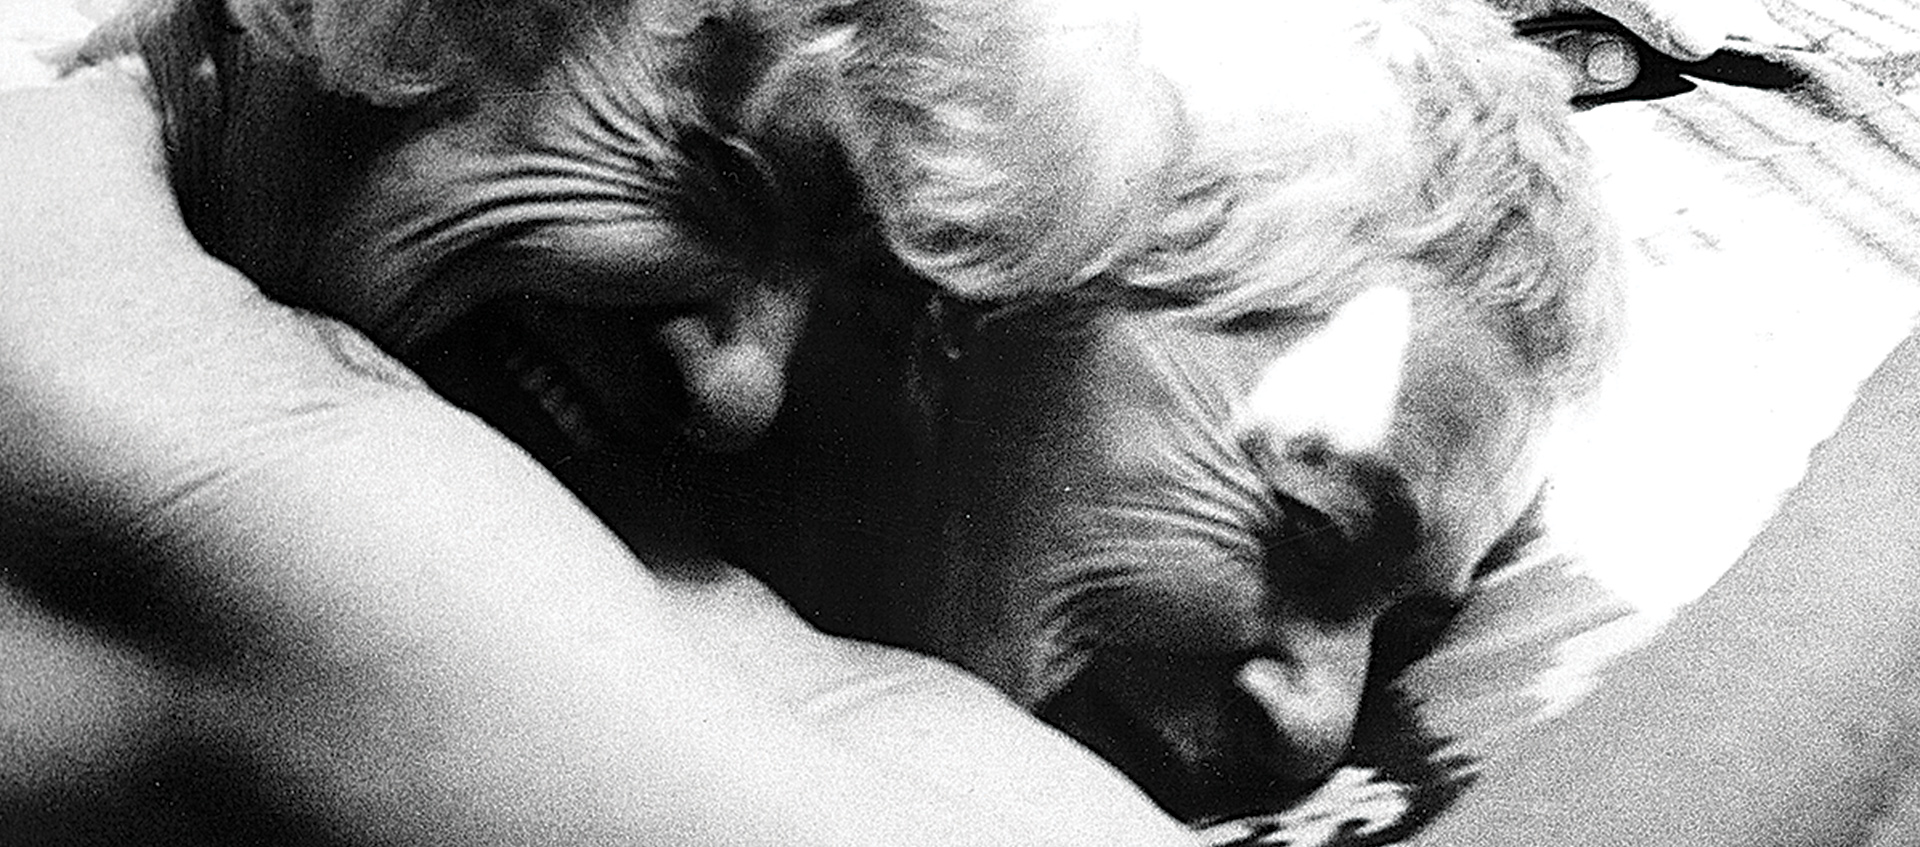 Still from the film Nitrate Kisses by Barbara Hammer